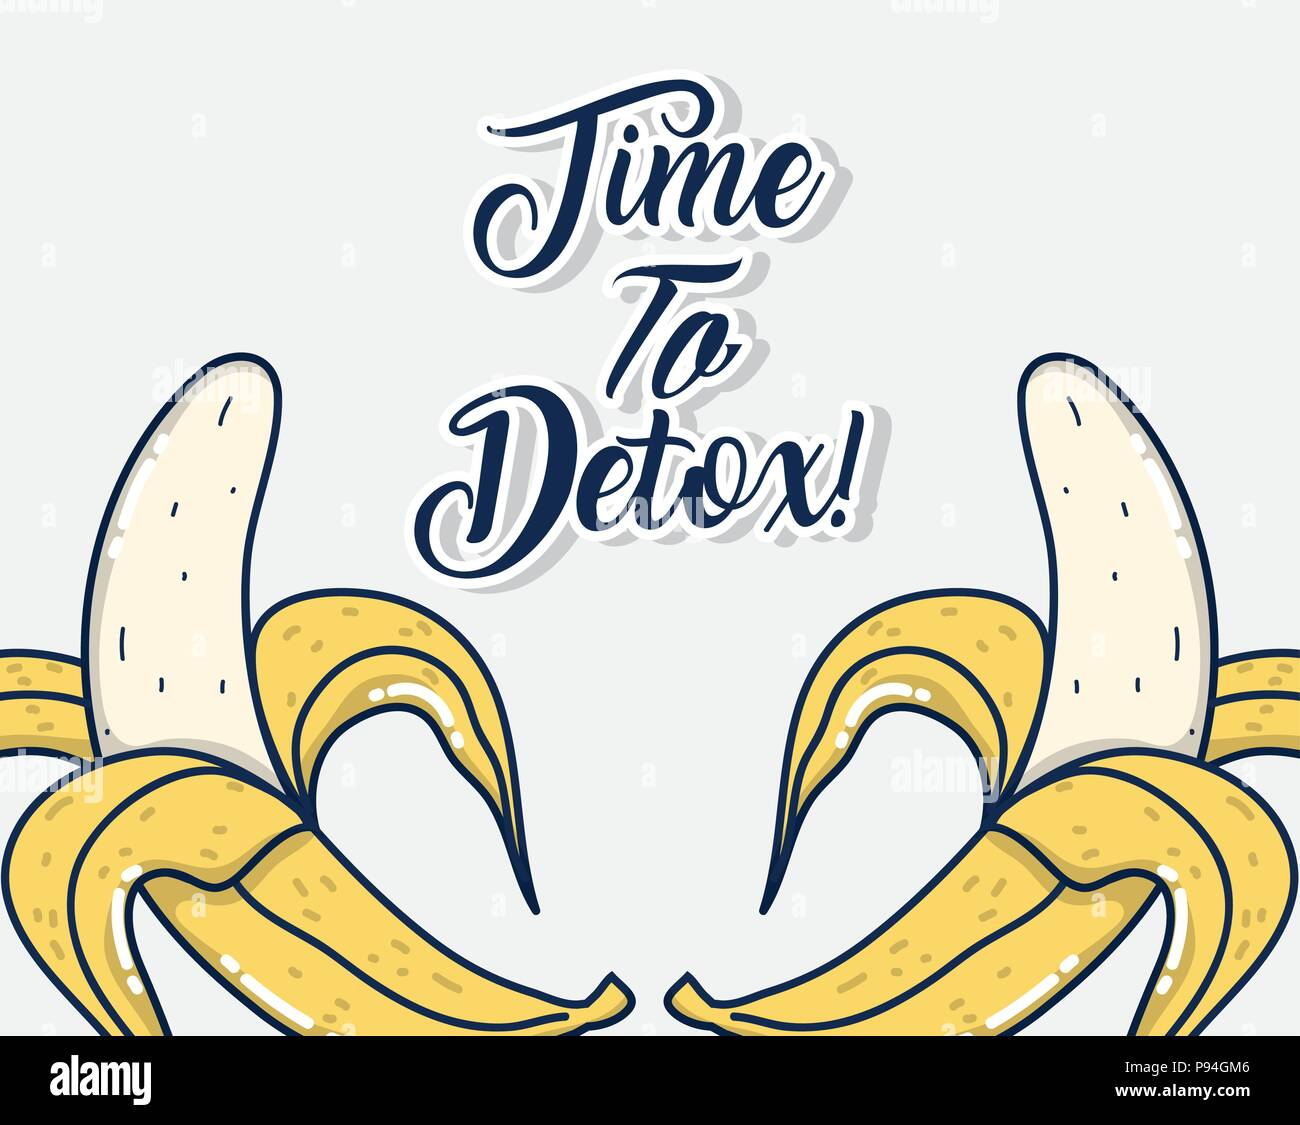 Time to detox - Stock Image